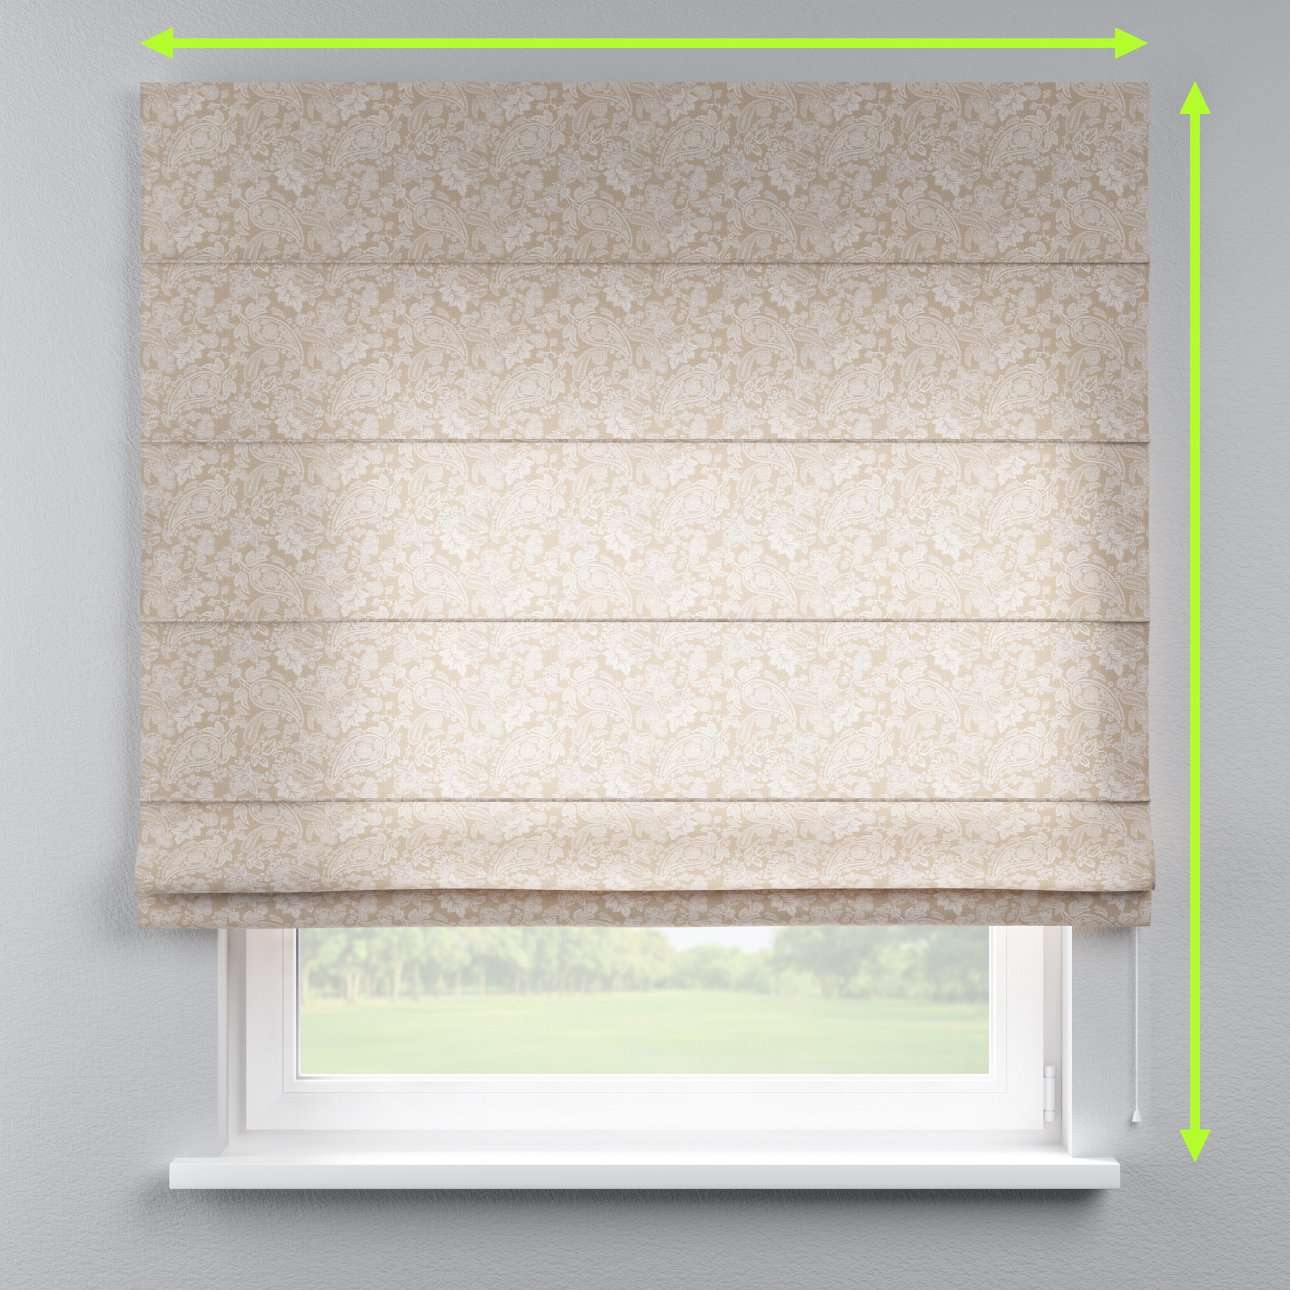 Capri roman blind in collection Flowers, fabric: 311-08